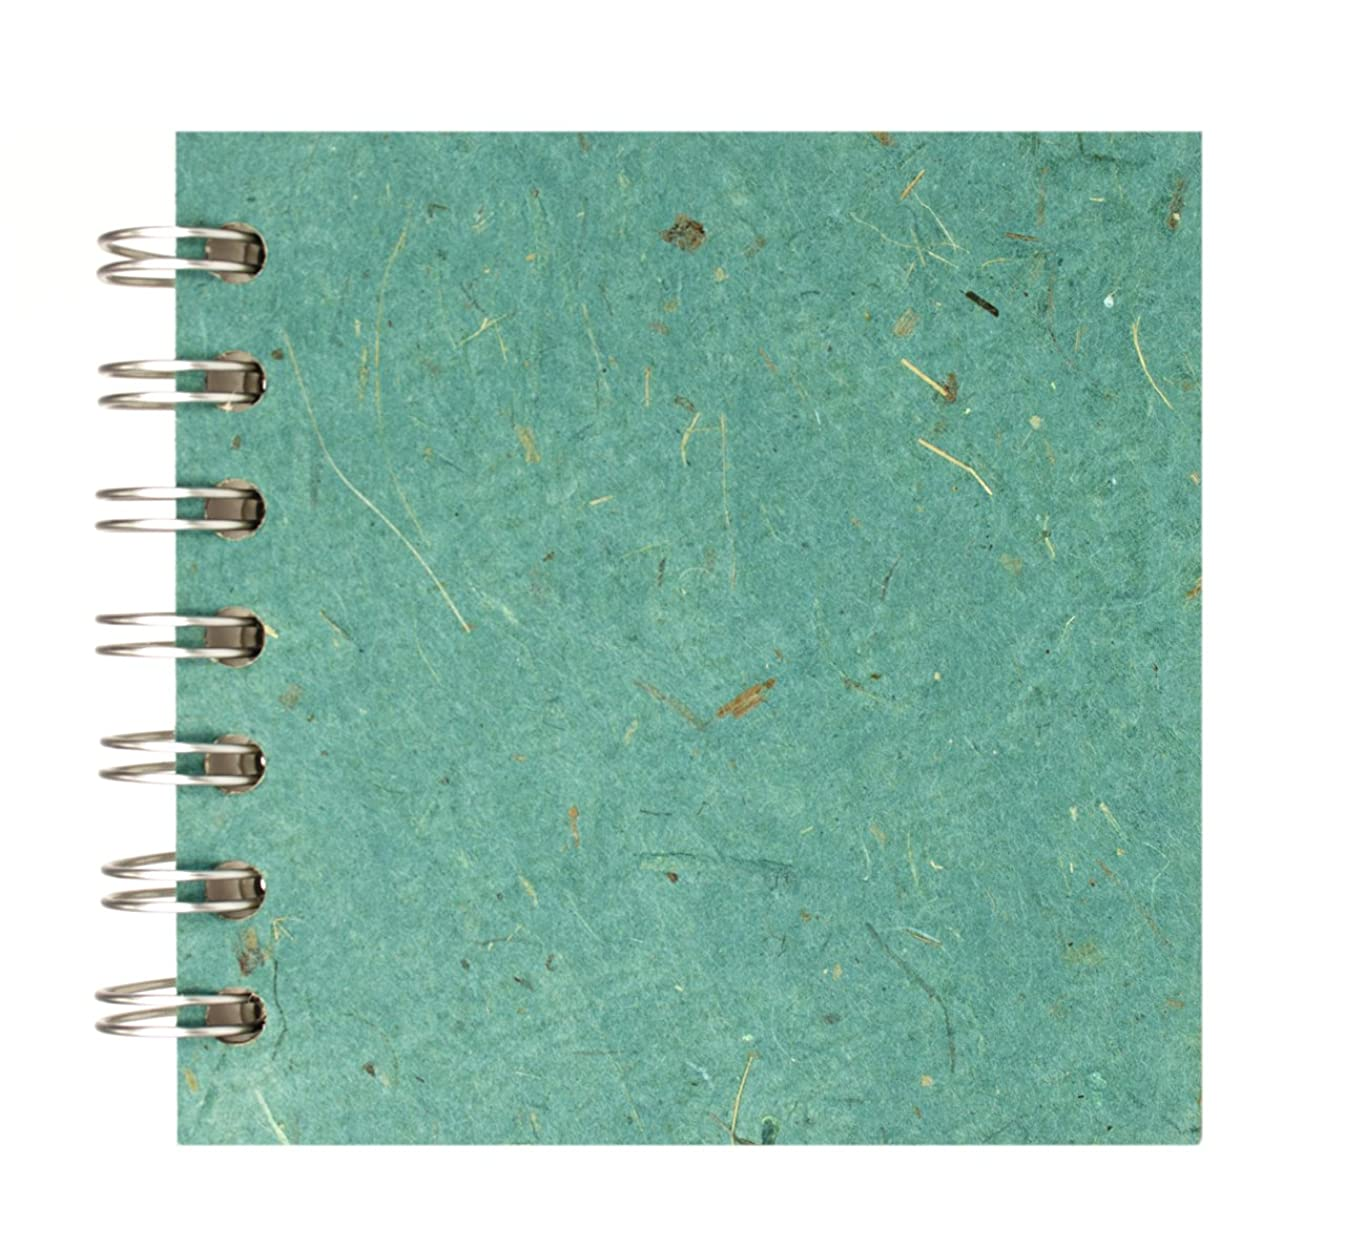 Zen Pink Pig, 4 x 4 Inch Square Sketchbook | 35 White Sheets, 100 Pound | Turquoise